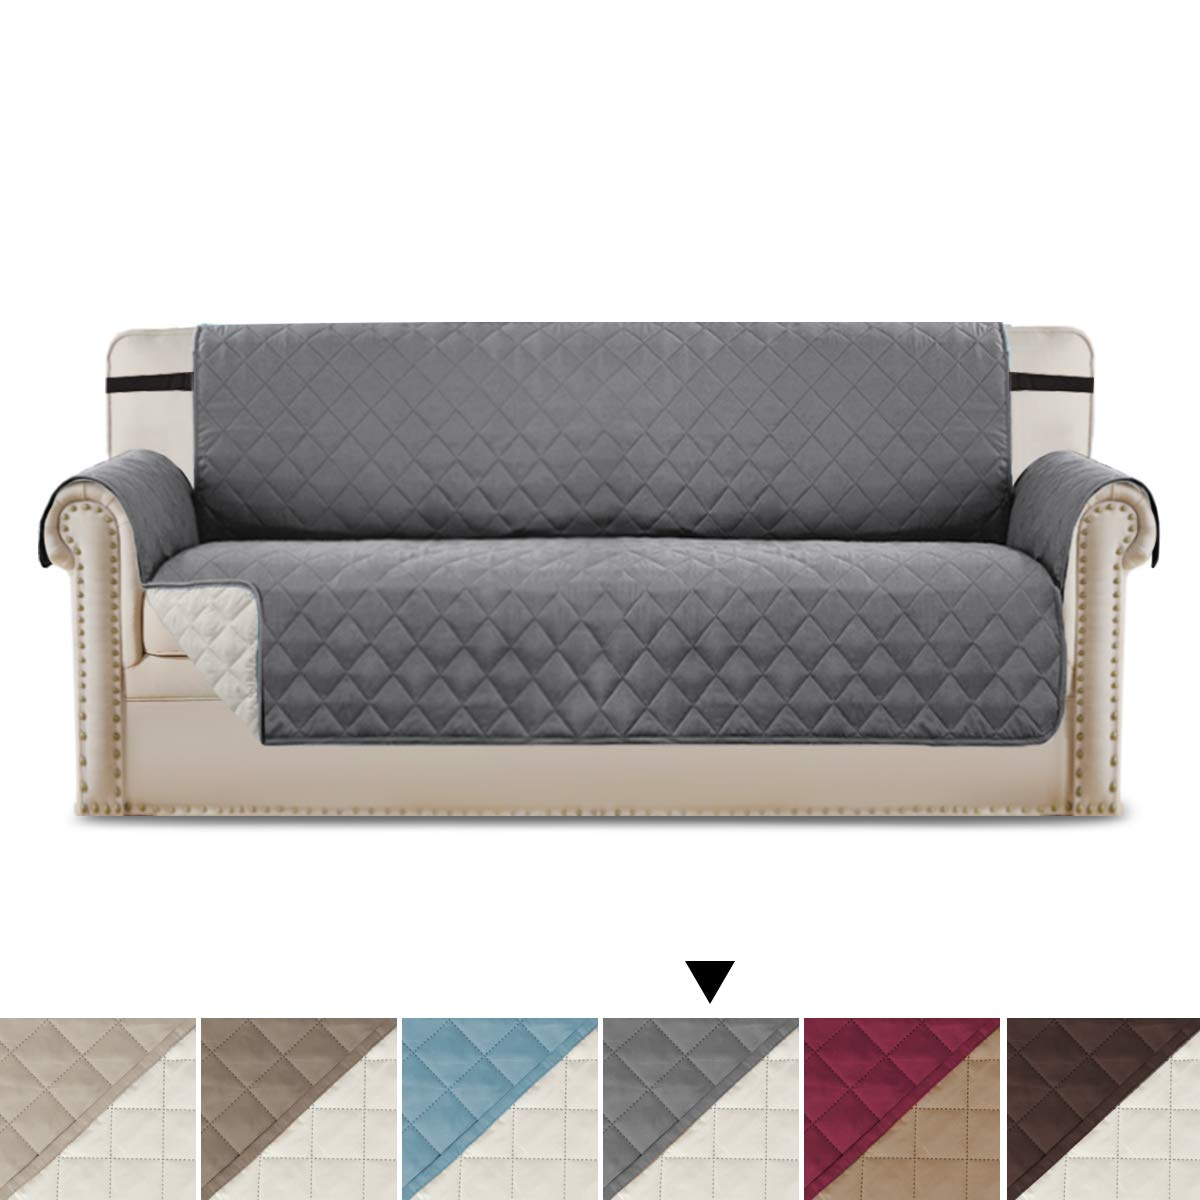 CDM product Sofa Cover Reversible Couch Slipcover Furniture Protector, 2 Inch Wide Elastic Strap, Machine Washable, Slipcover for Pets, Dogs, Kids (Sofa: Gray/Beige) big image